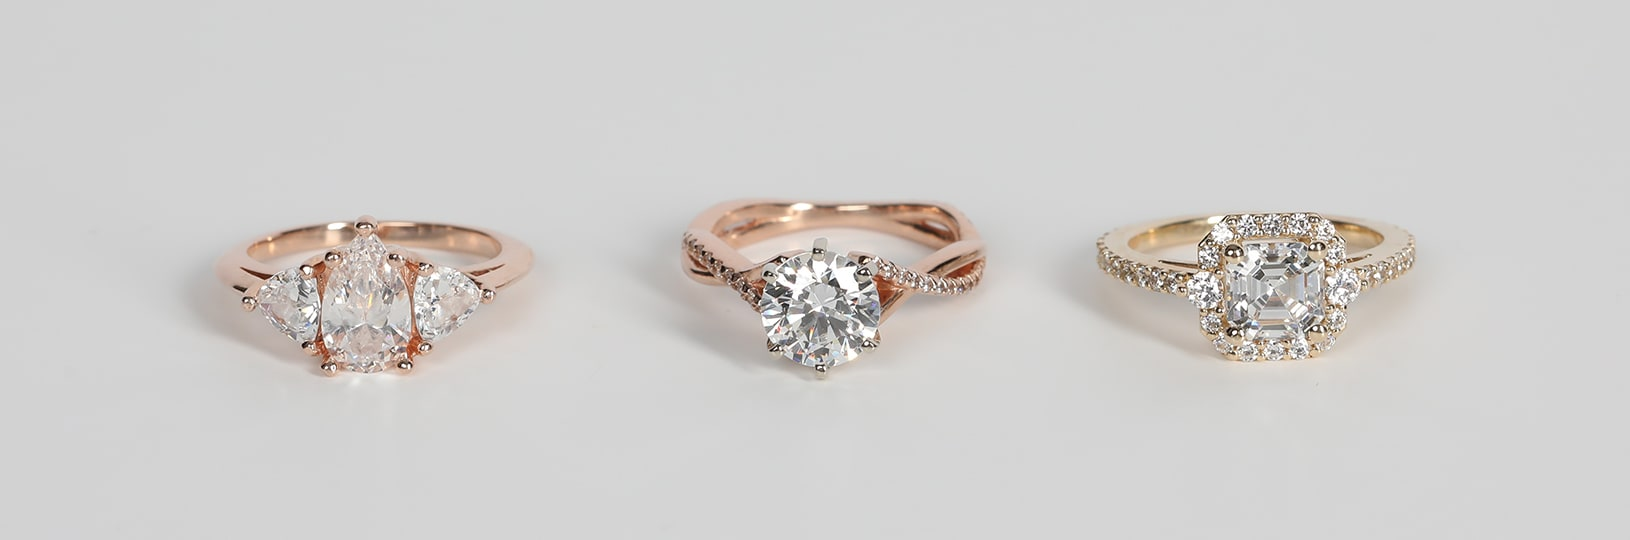 Affordable engagement rings set with lab created diamond simulants.